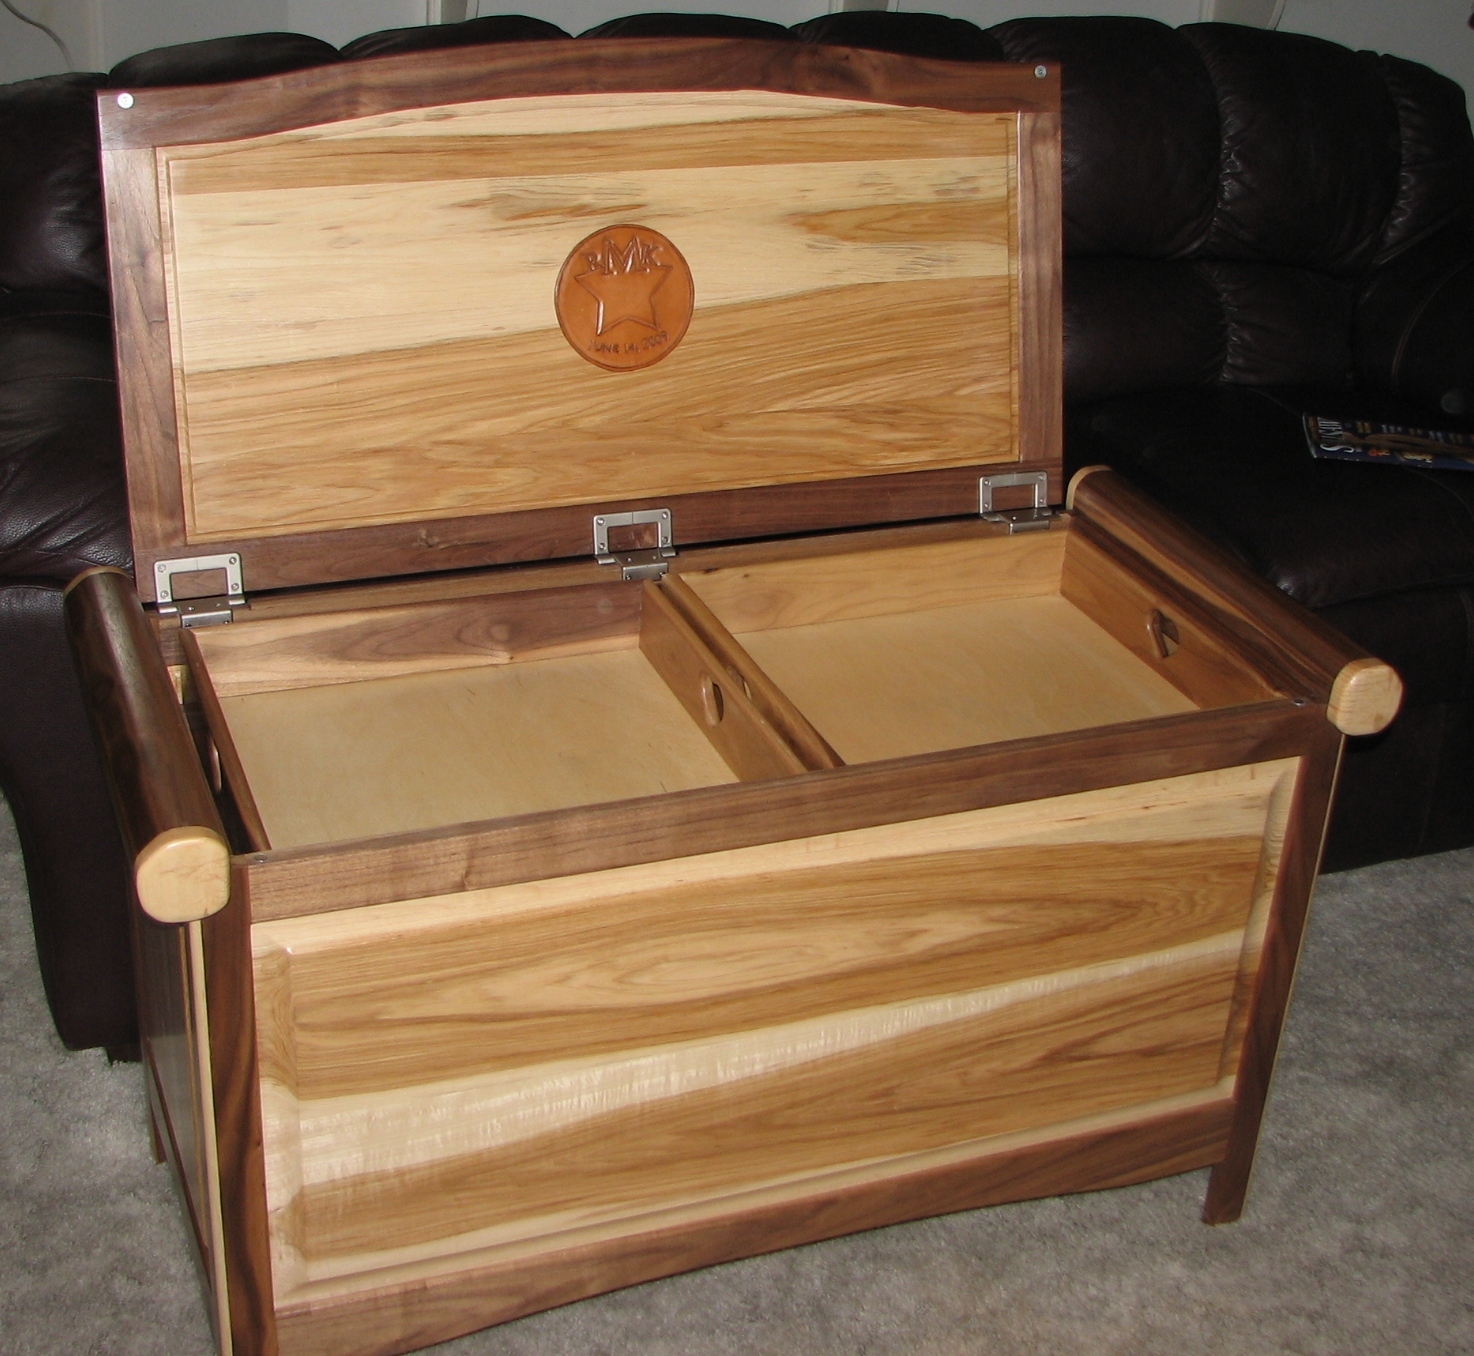 Pdf Diy Plans Cedar Hope Chest Download Plans For Building